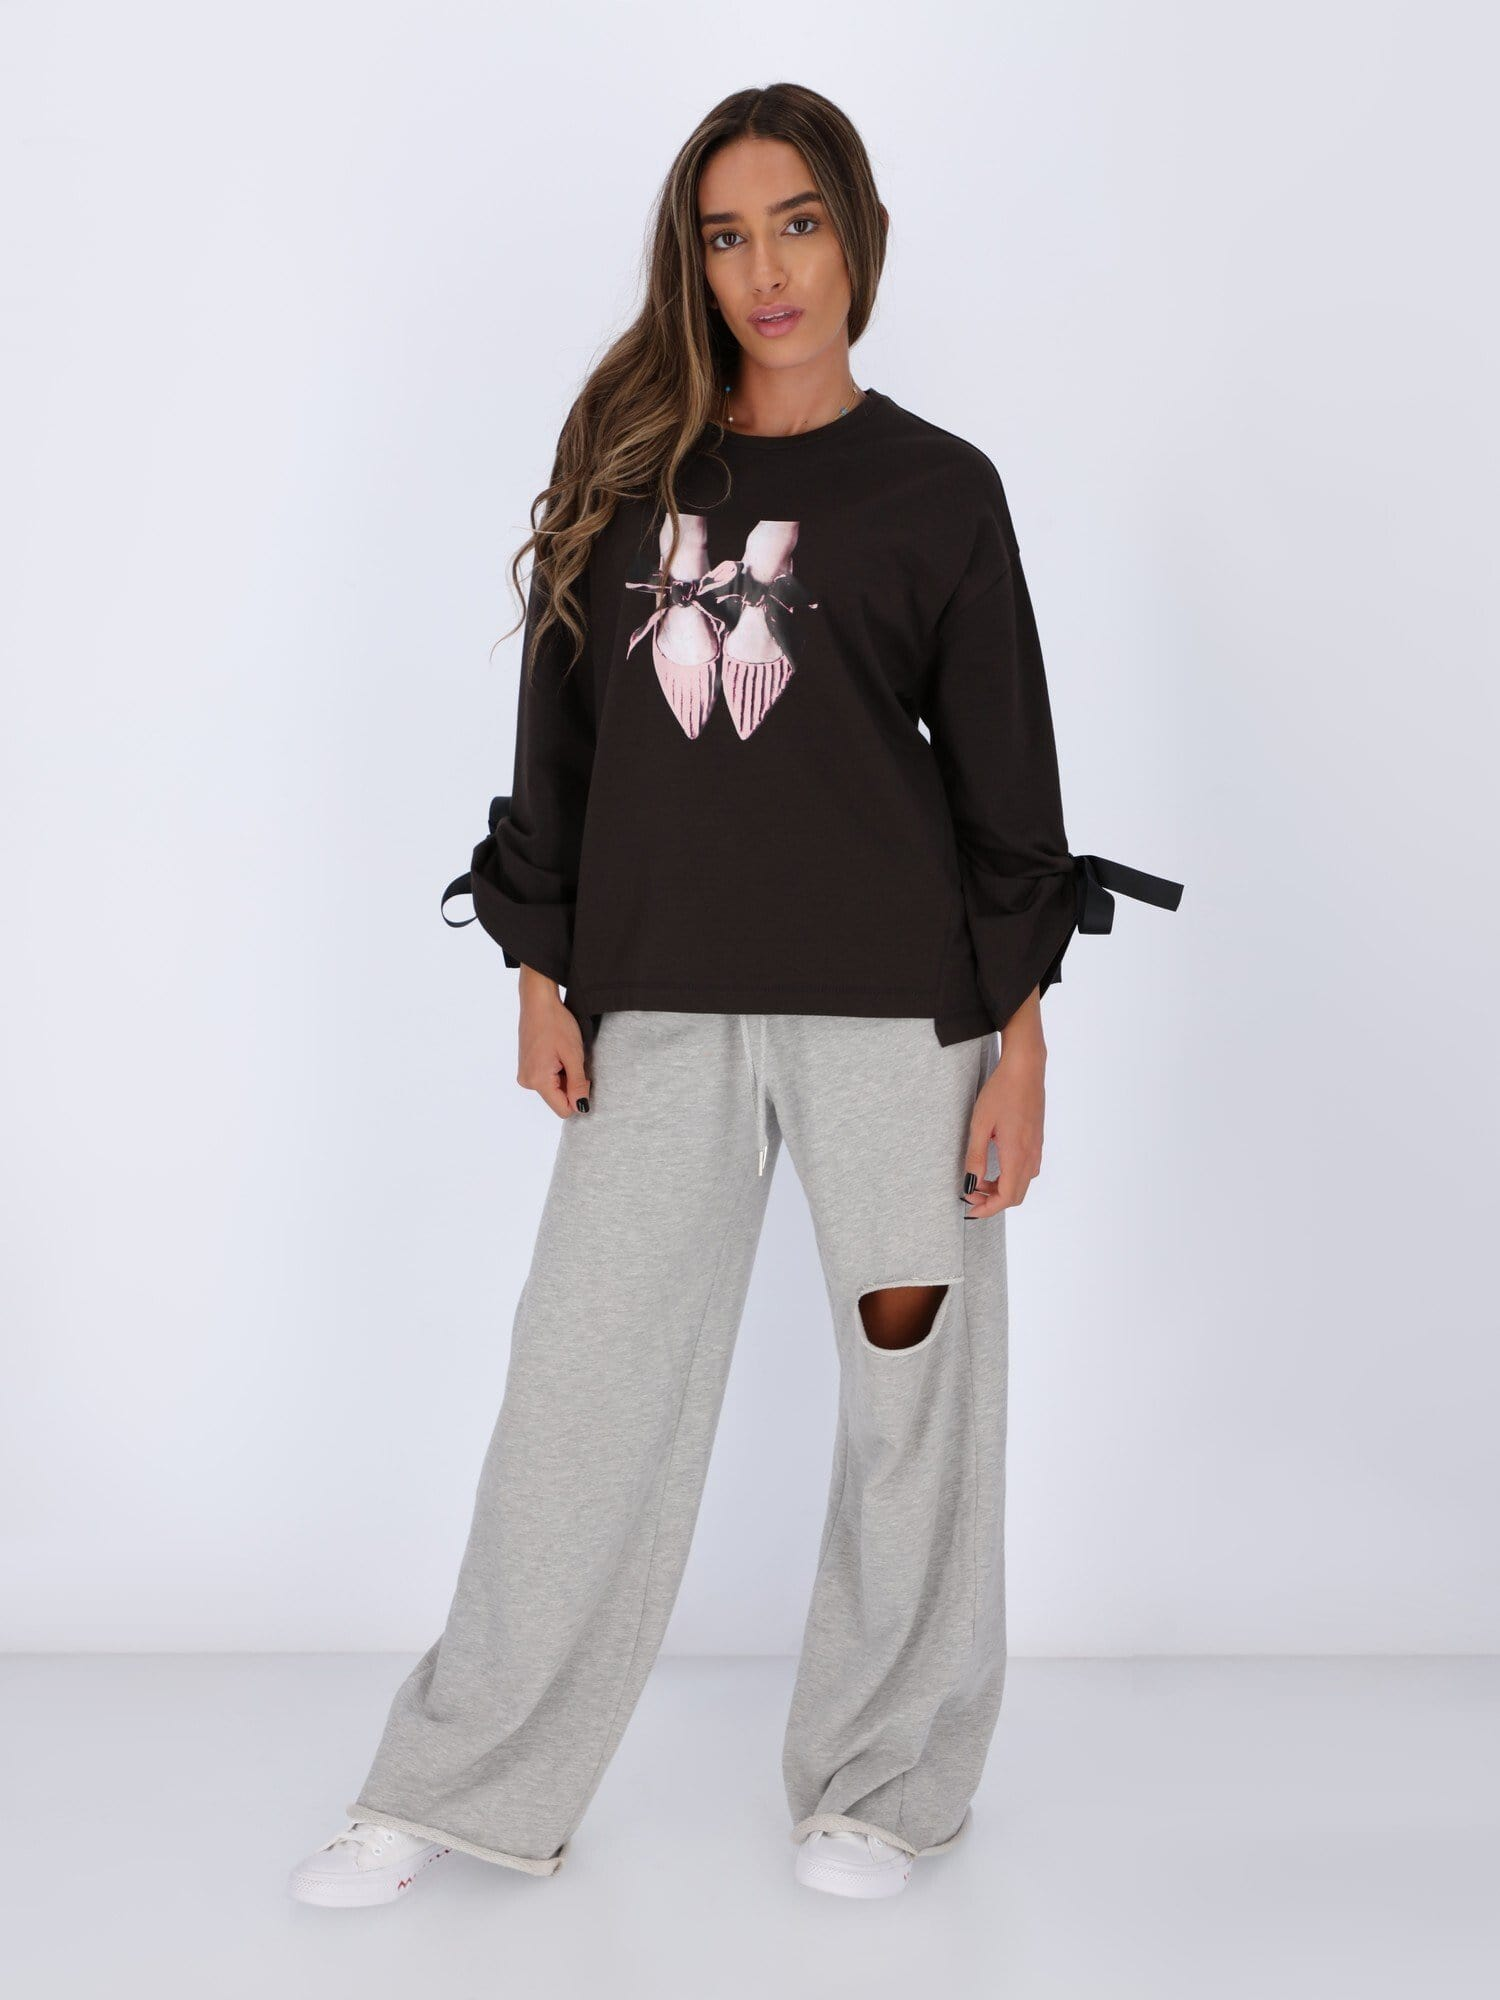 OR Sweatshirts & Hoodies Ballerina Sweatshirt